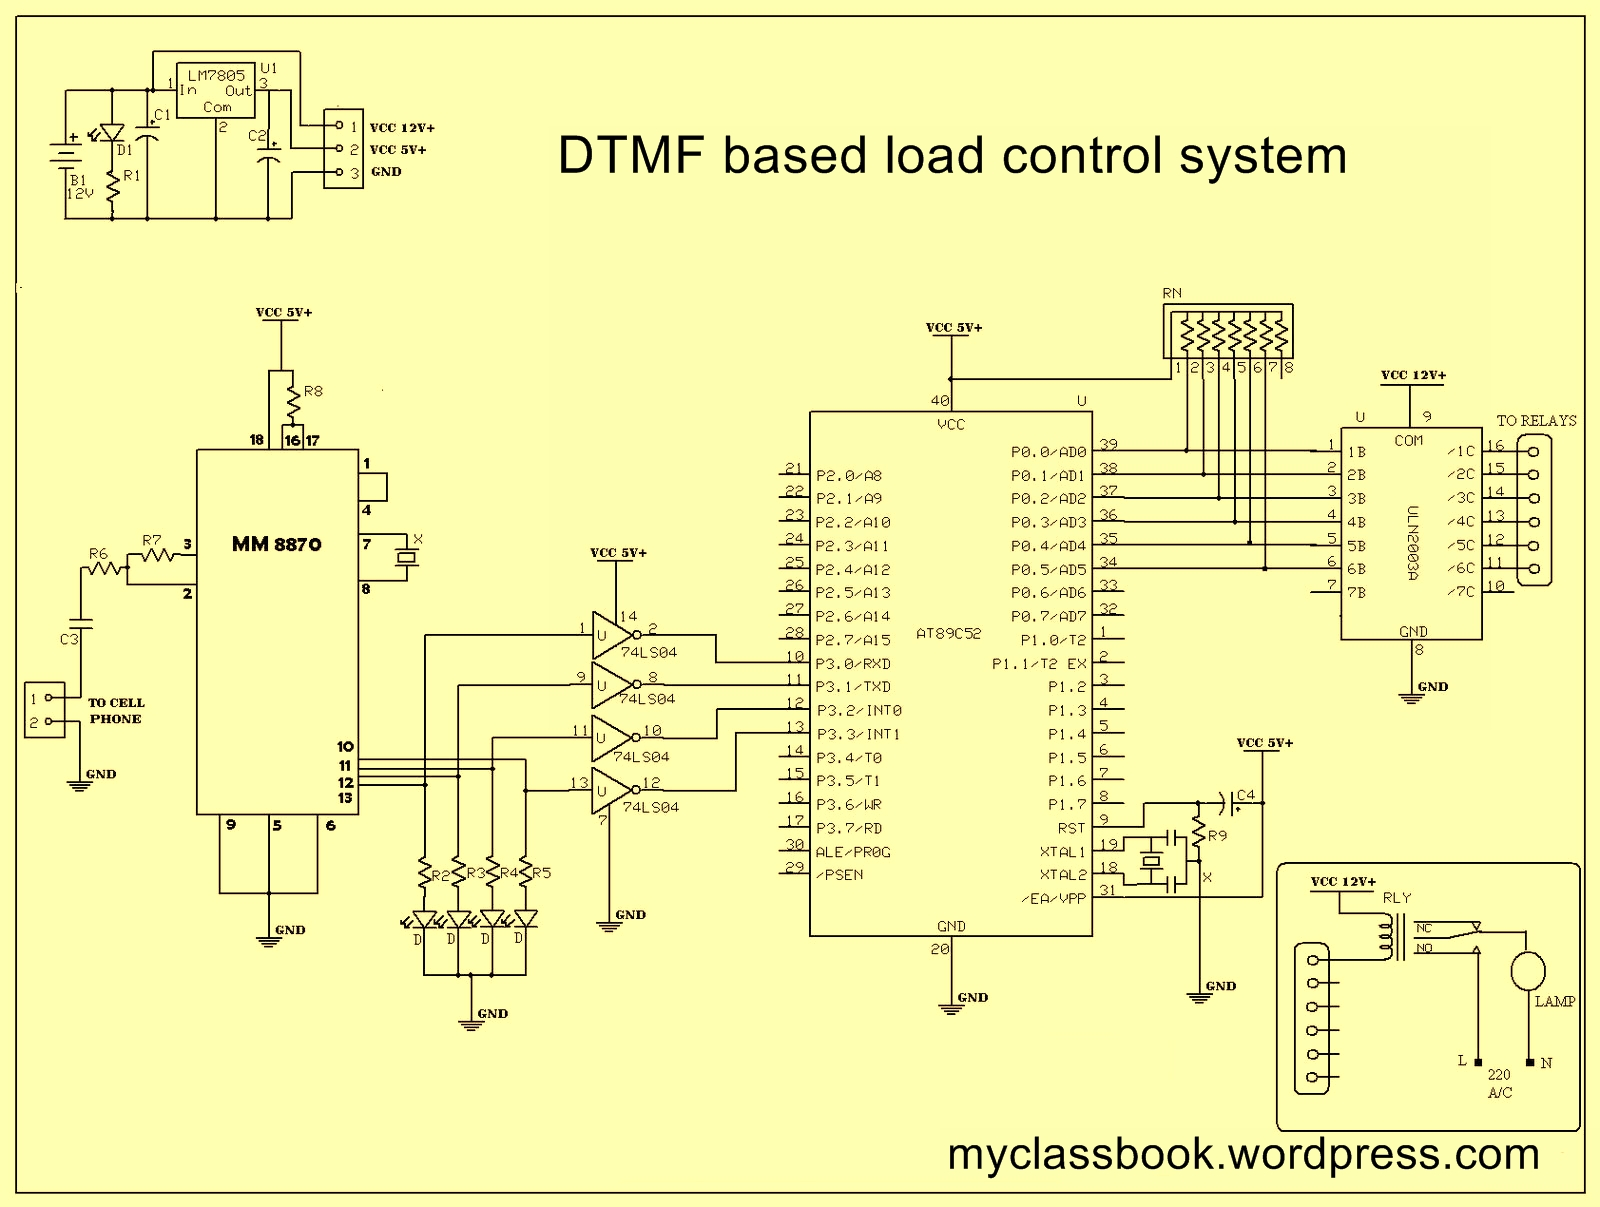 Electronic Project Circuit Diagram Dtmf Electrical Wiring Basic Electronics Projects Based Load Control System Home Automation Rh Myclassbook Org Simple